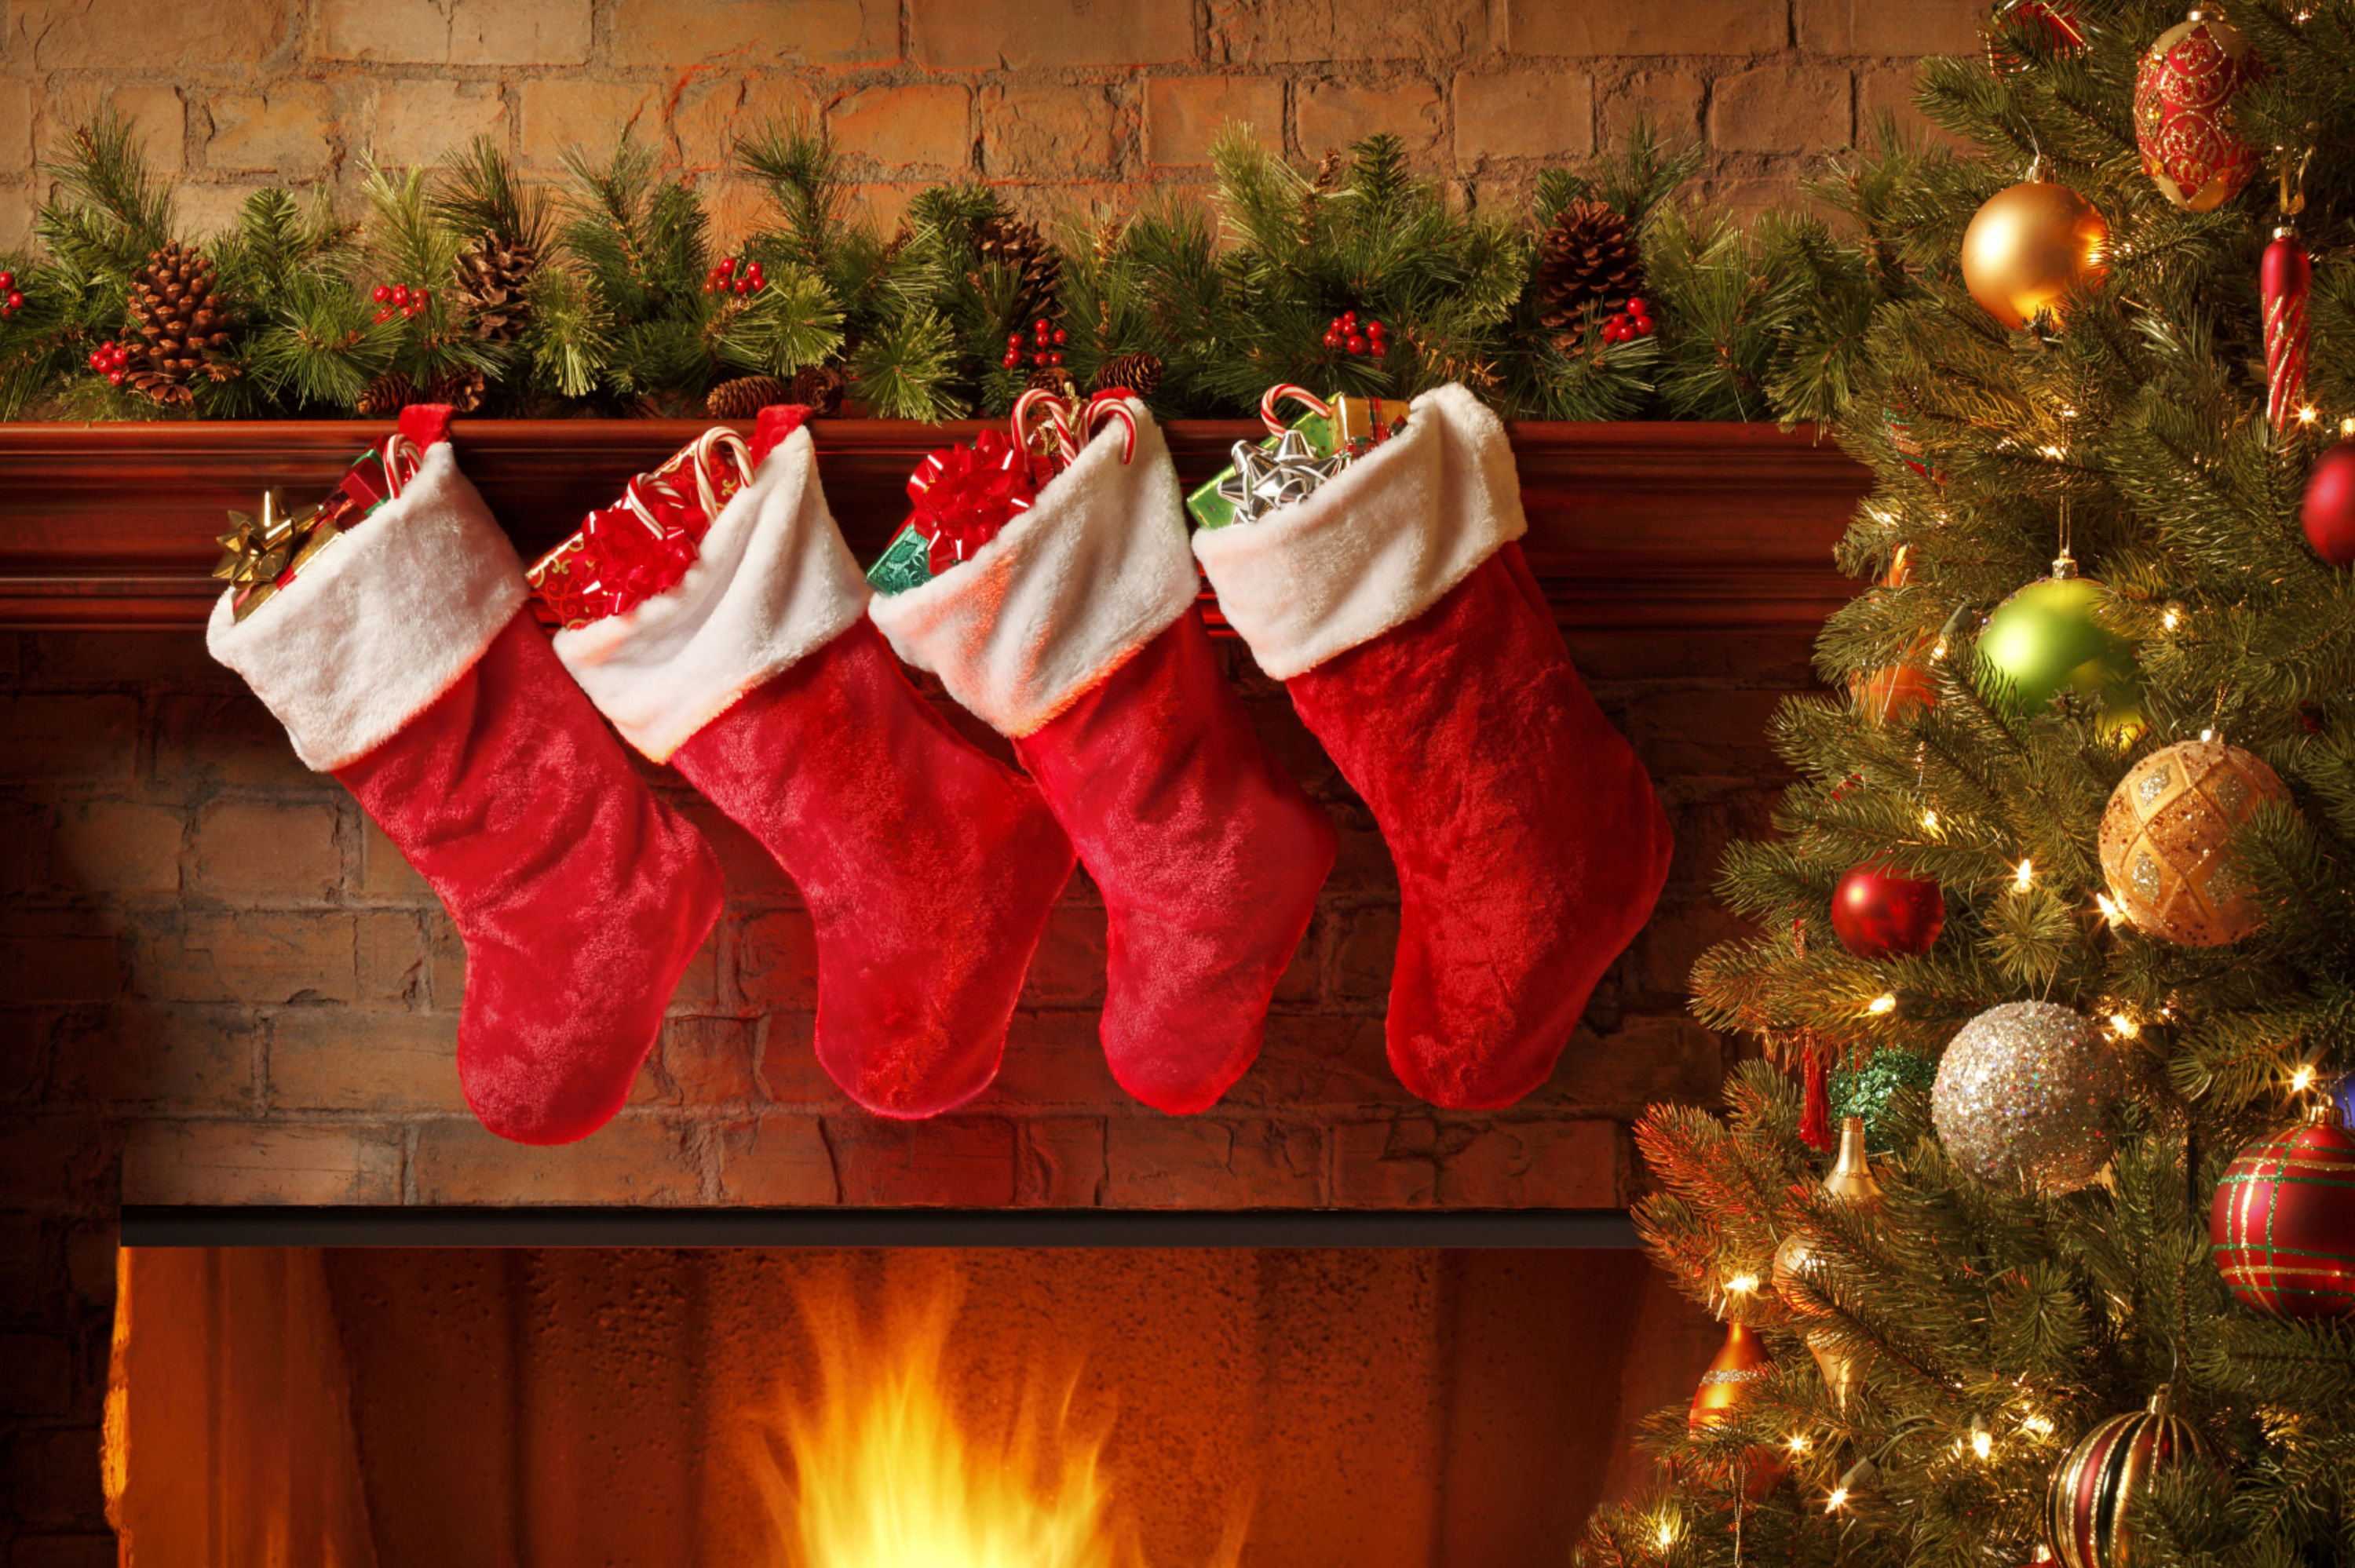 Fireplace clipart holiday Christmas Happy Fireplace (12) Stockings